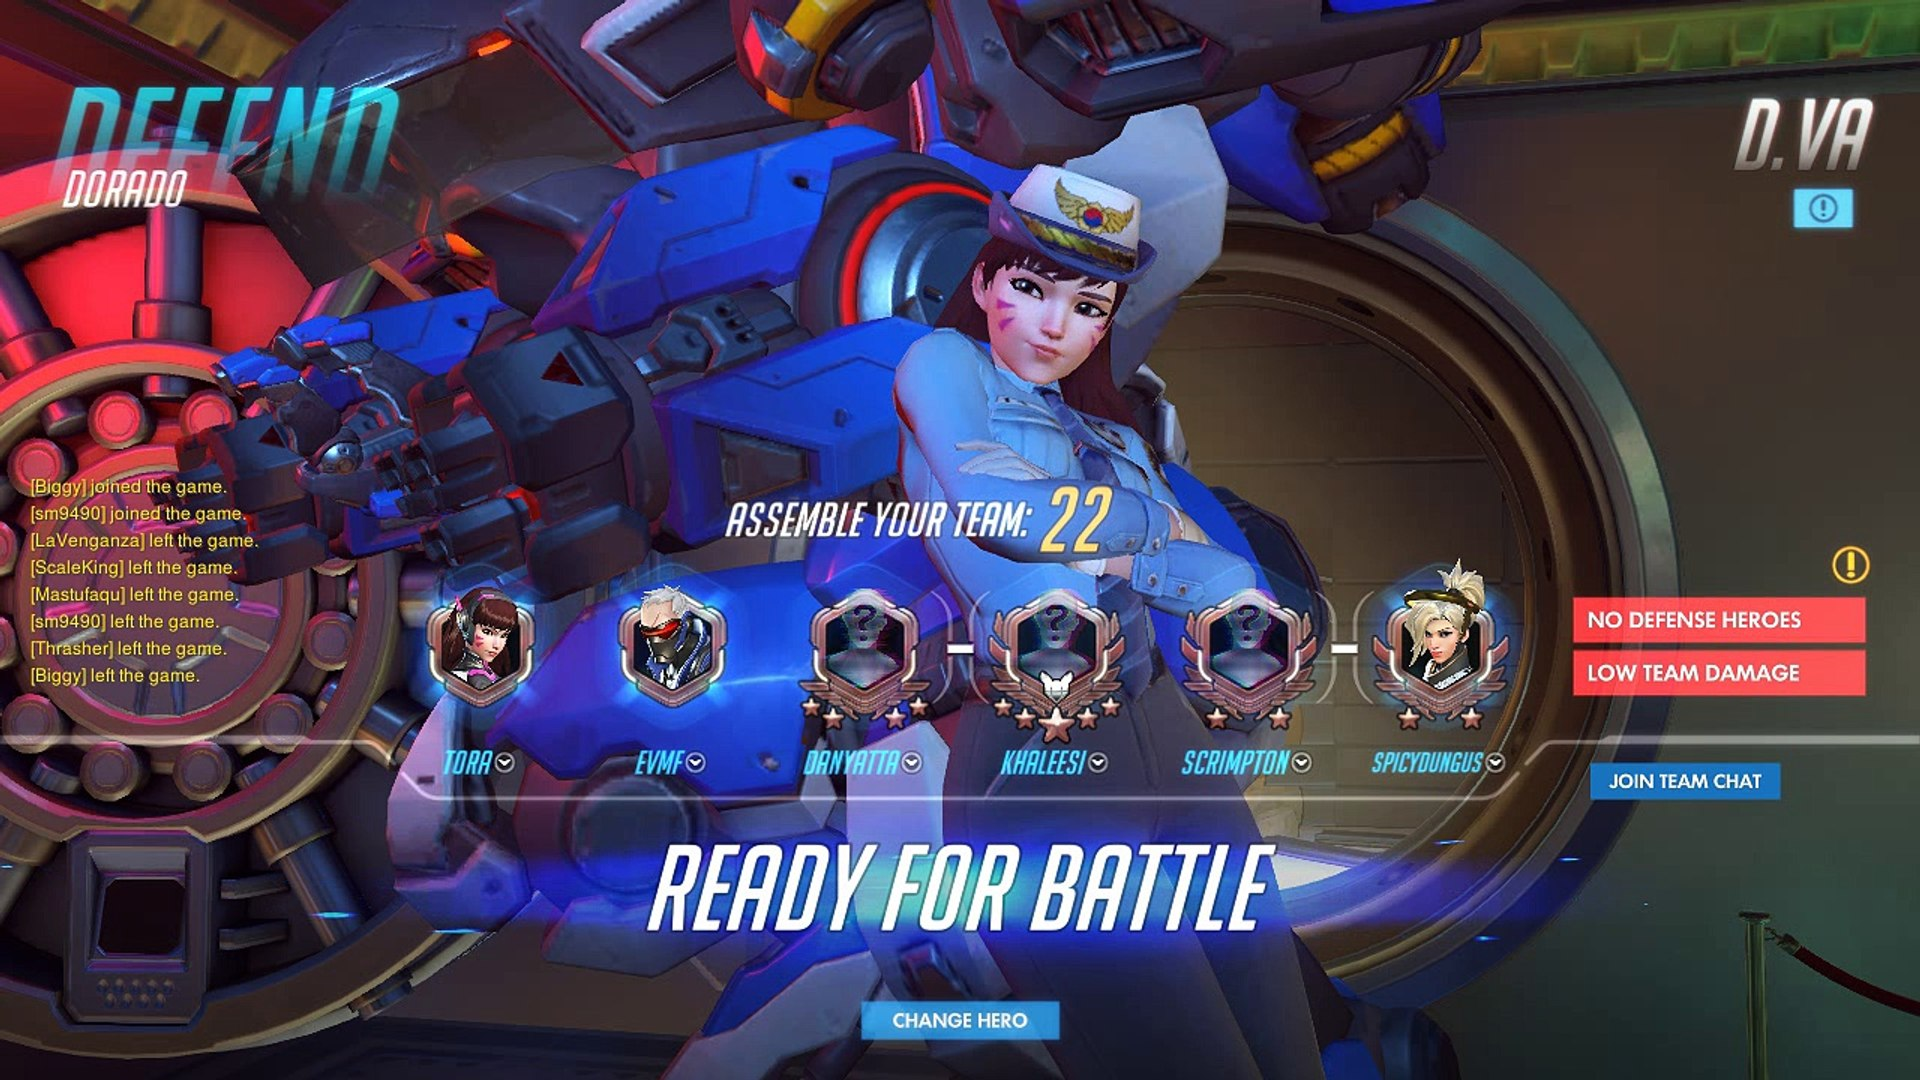 Overwatch 000-DVA-000-027  D.Va Placement Match 5 - We lost oh well